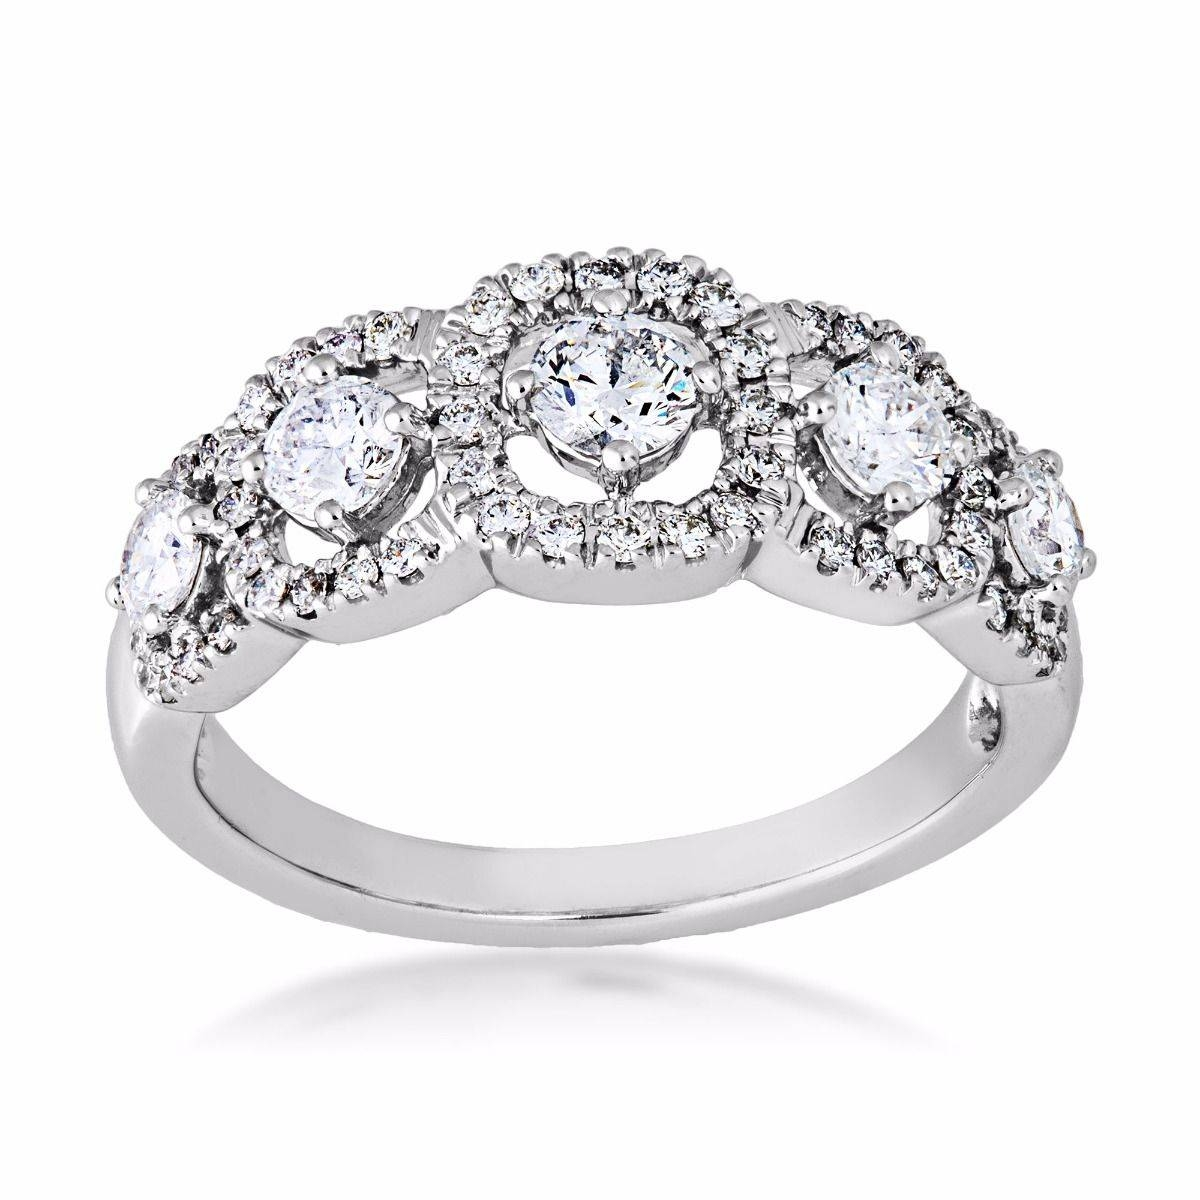 Women's Diamond Anniversary Bands – Shop Anniversary Rings, Bands With Regard To Current Womens Diamond Anniversary Rings (Gallery 1 of 25)